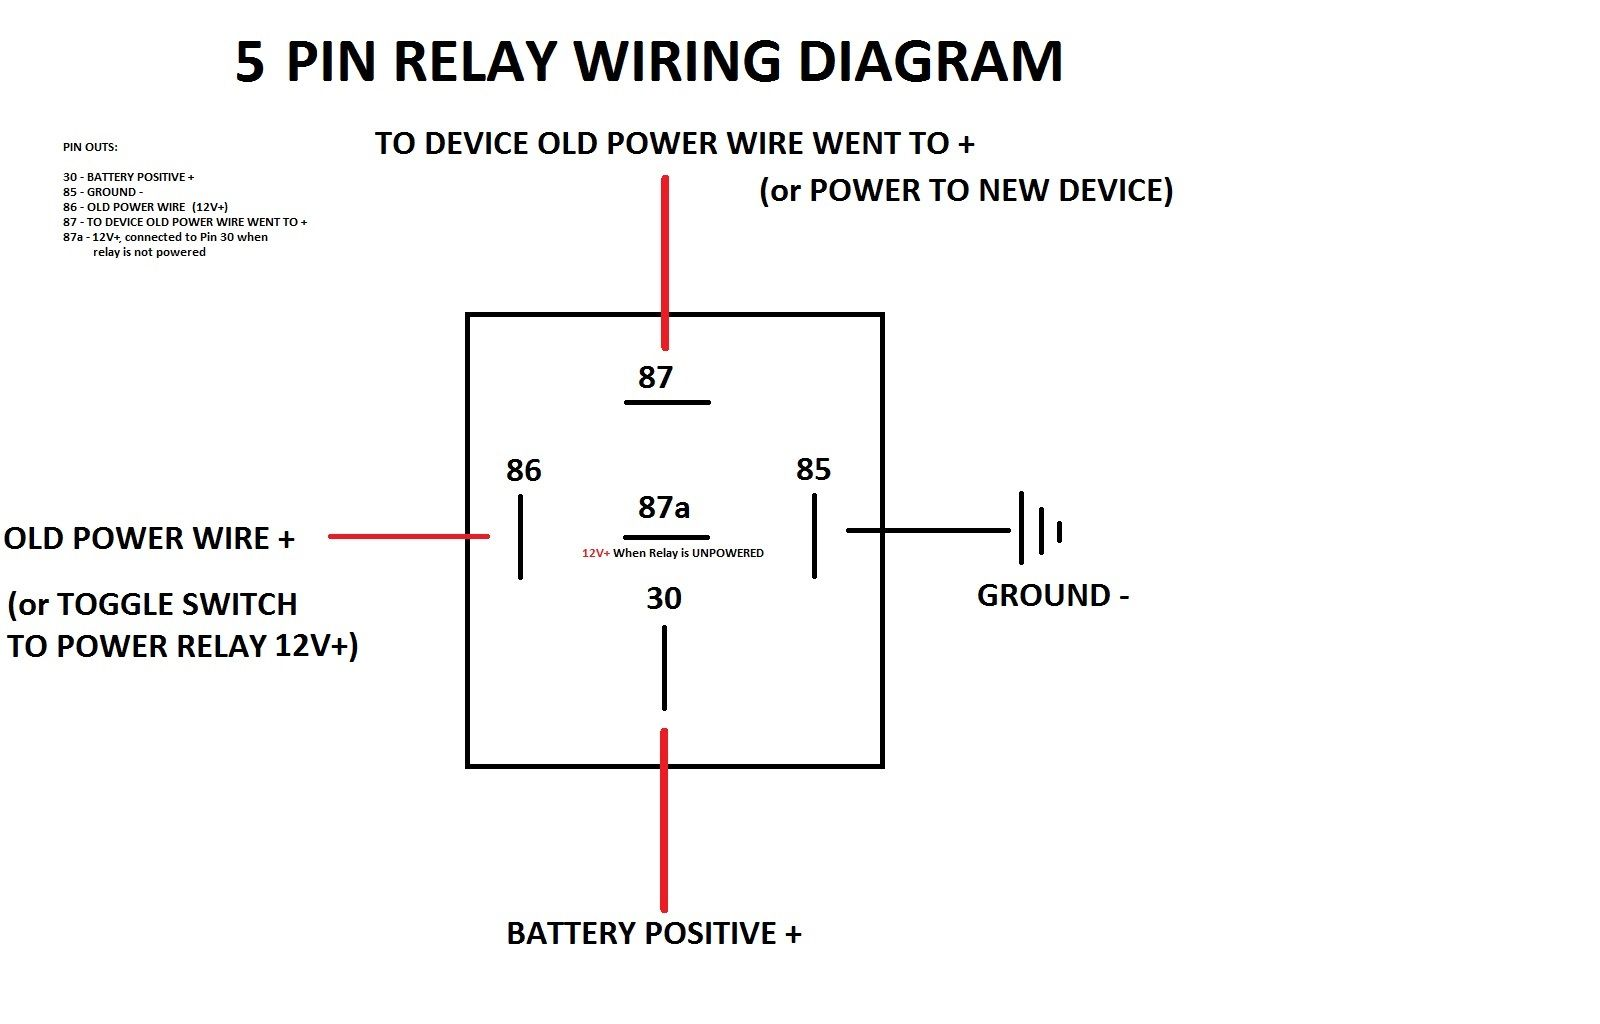 Simple 5 Pin Relay Diagram Dsmtuners 12 V Pinterest Wire Laptop Connections For Wiring Go Kart Free Trucks